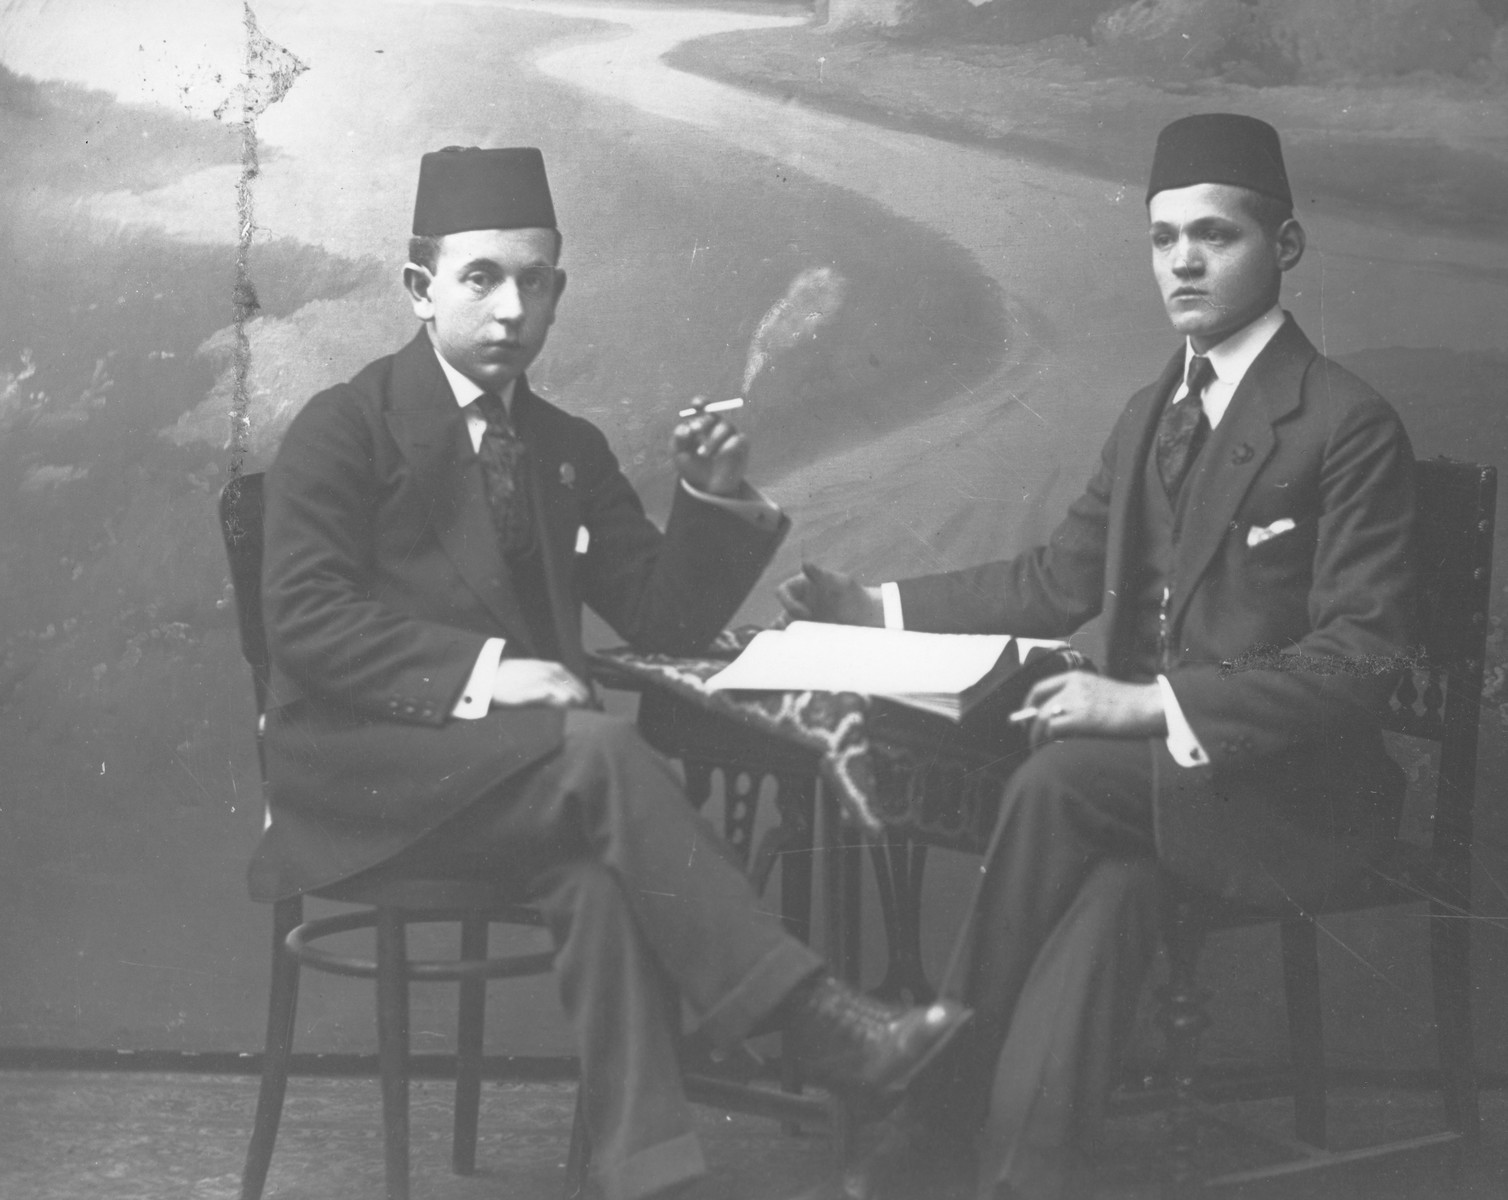 Studio portrait of two male Jewish students smoking cigarettes.  Pictured on the left is Michael Kabilio.